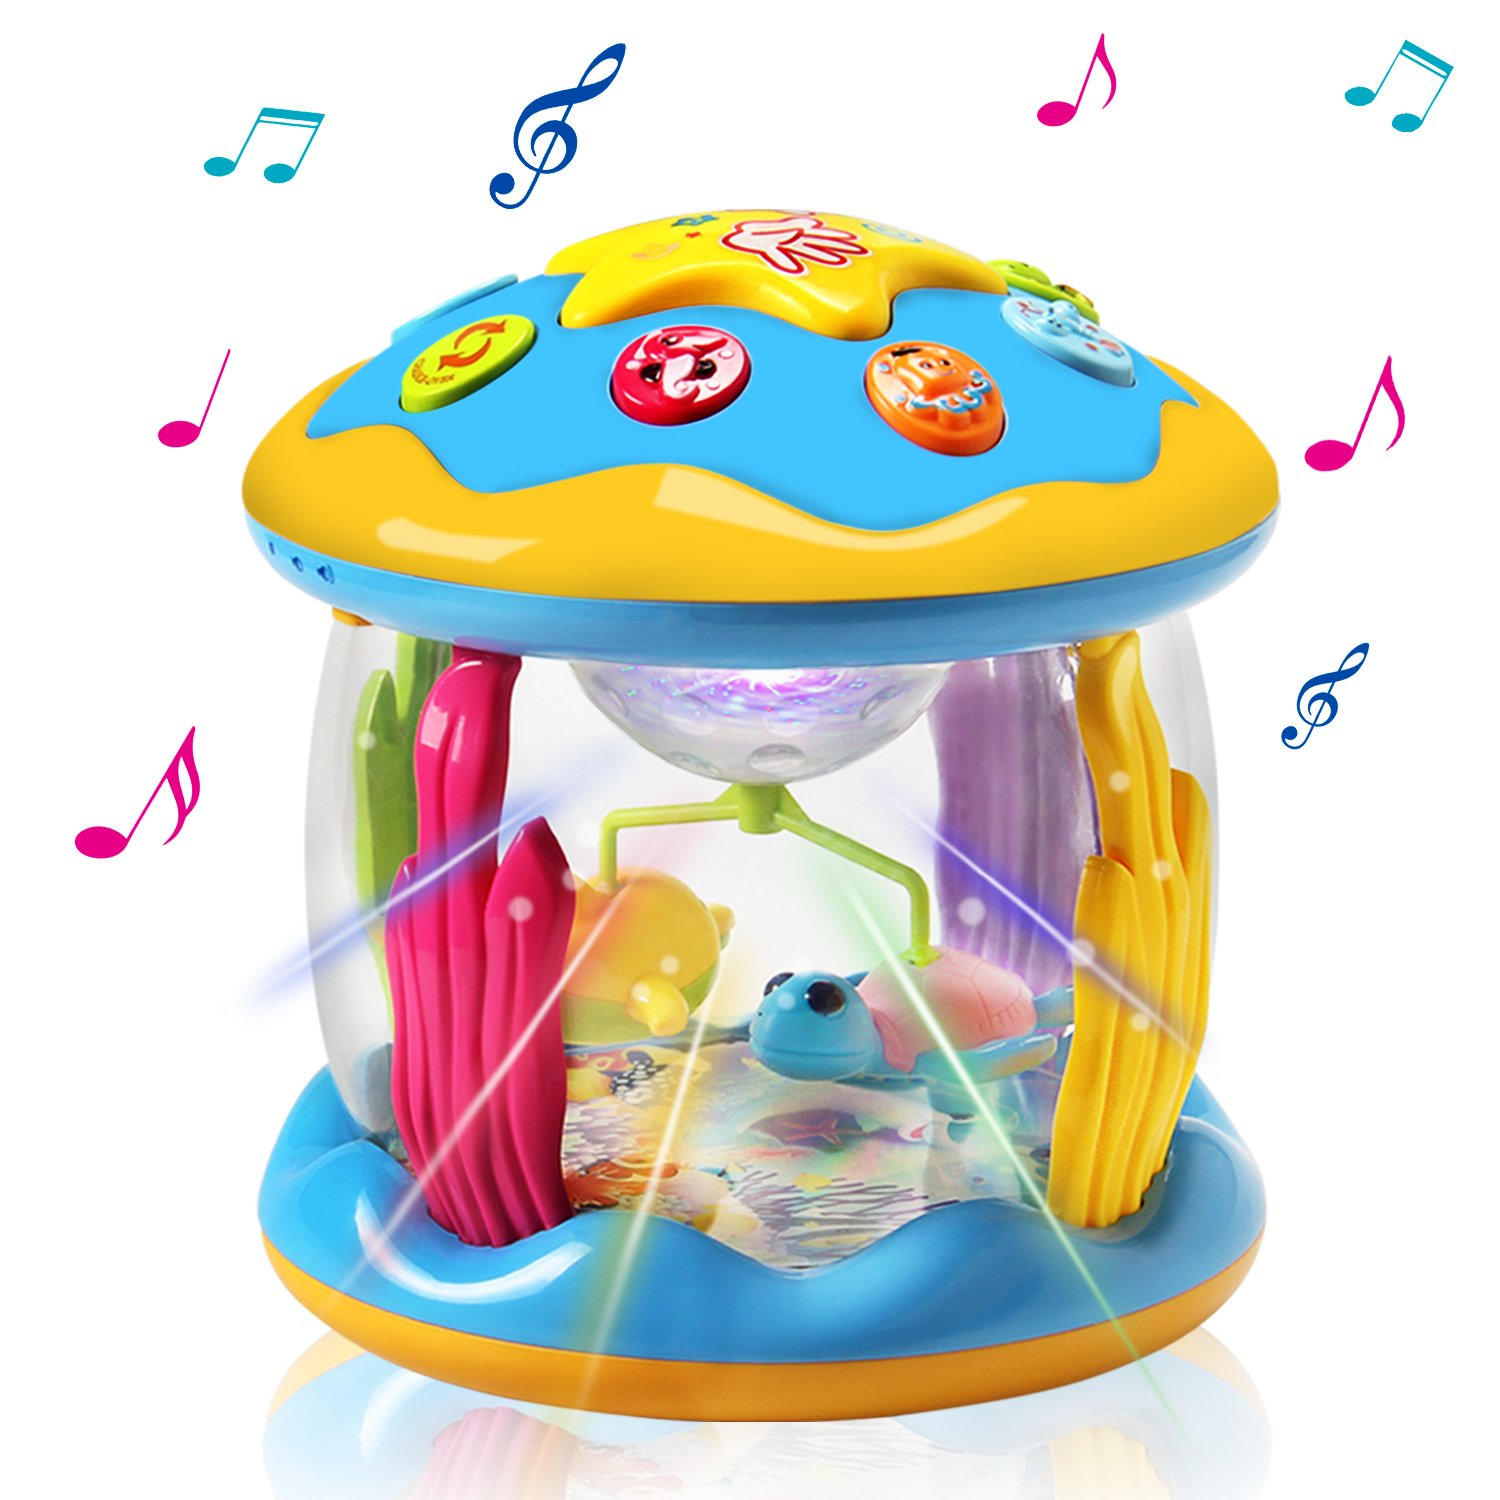 HOMOFY Baby Toys Ocean Park Rotating Projector,Various Pacify Music & Light,Super Fun,Early Educational Toys for 1 2 3 Year Girls and Boys Kids or Toddlers(BEST GIFTS) (red) (red)